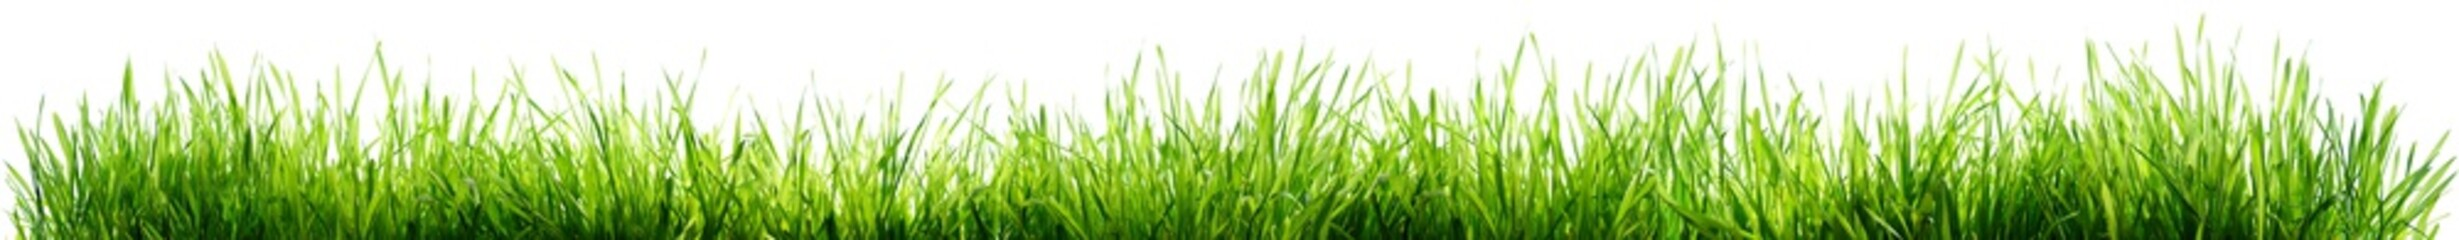 Grass Isolated On White - Spring Border